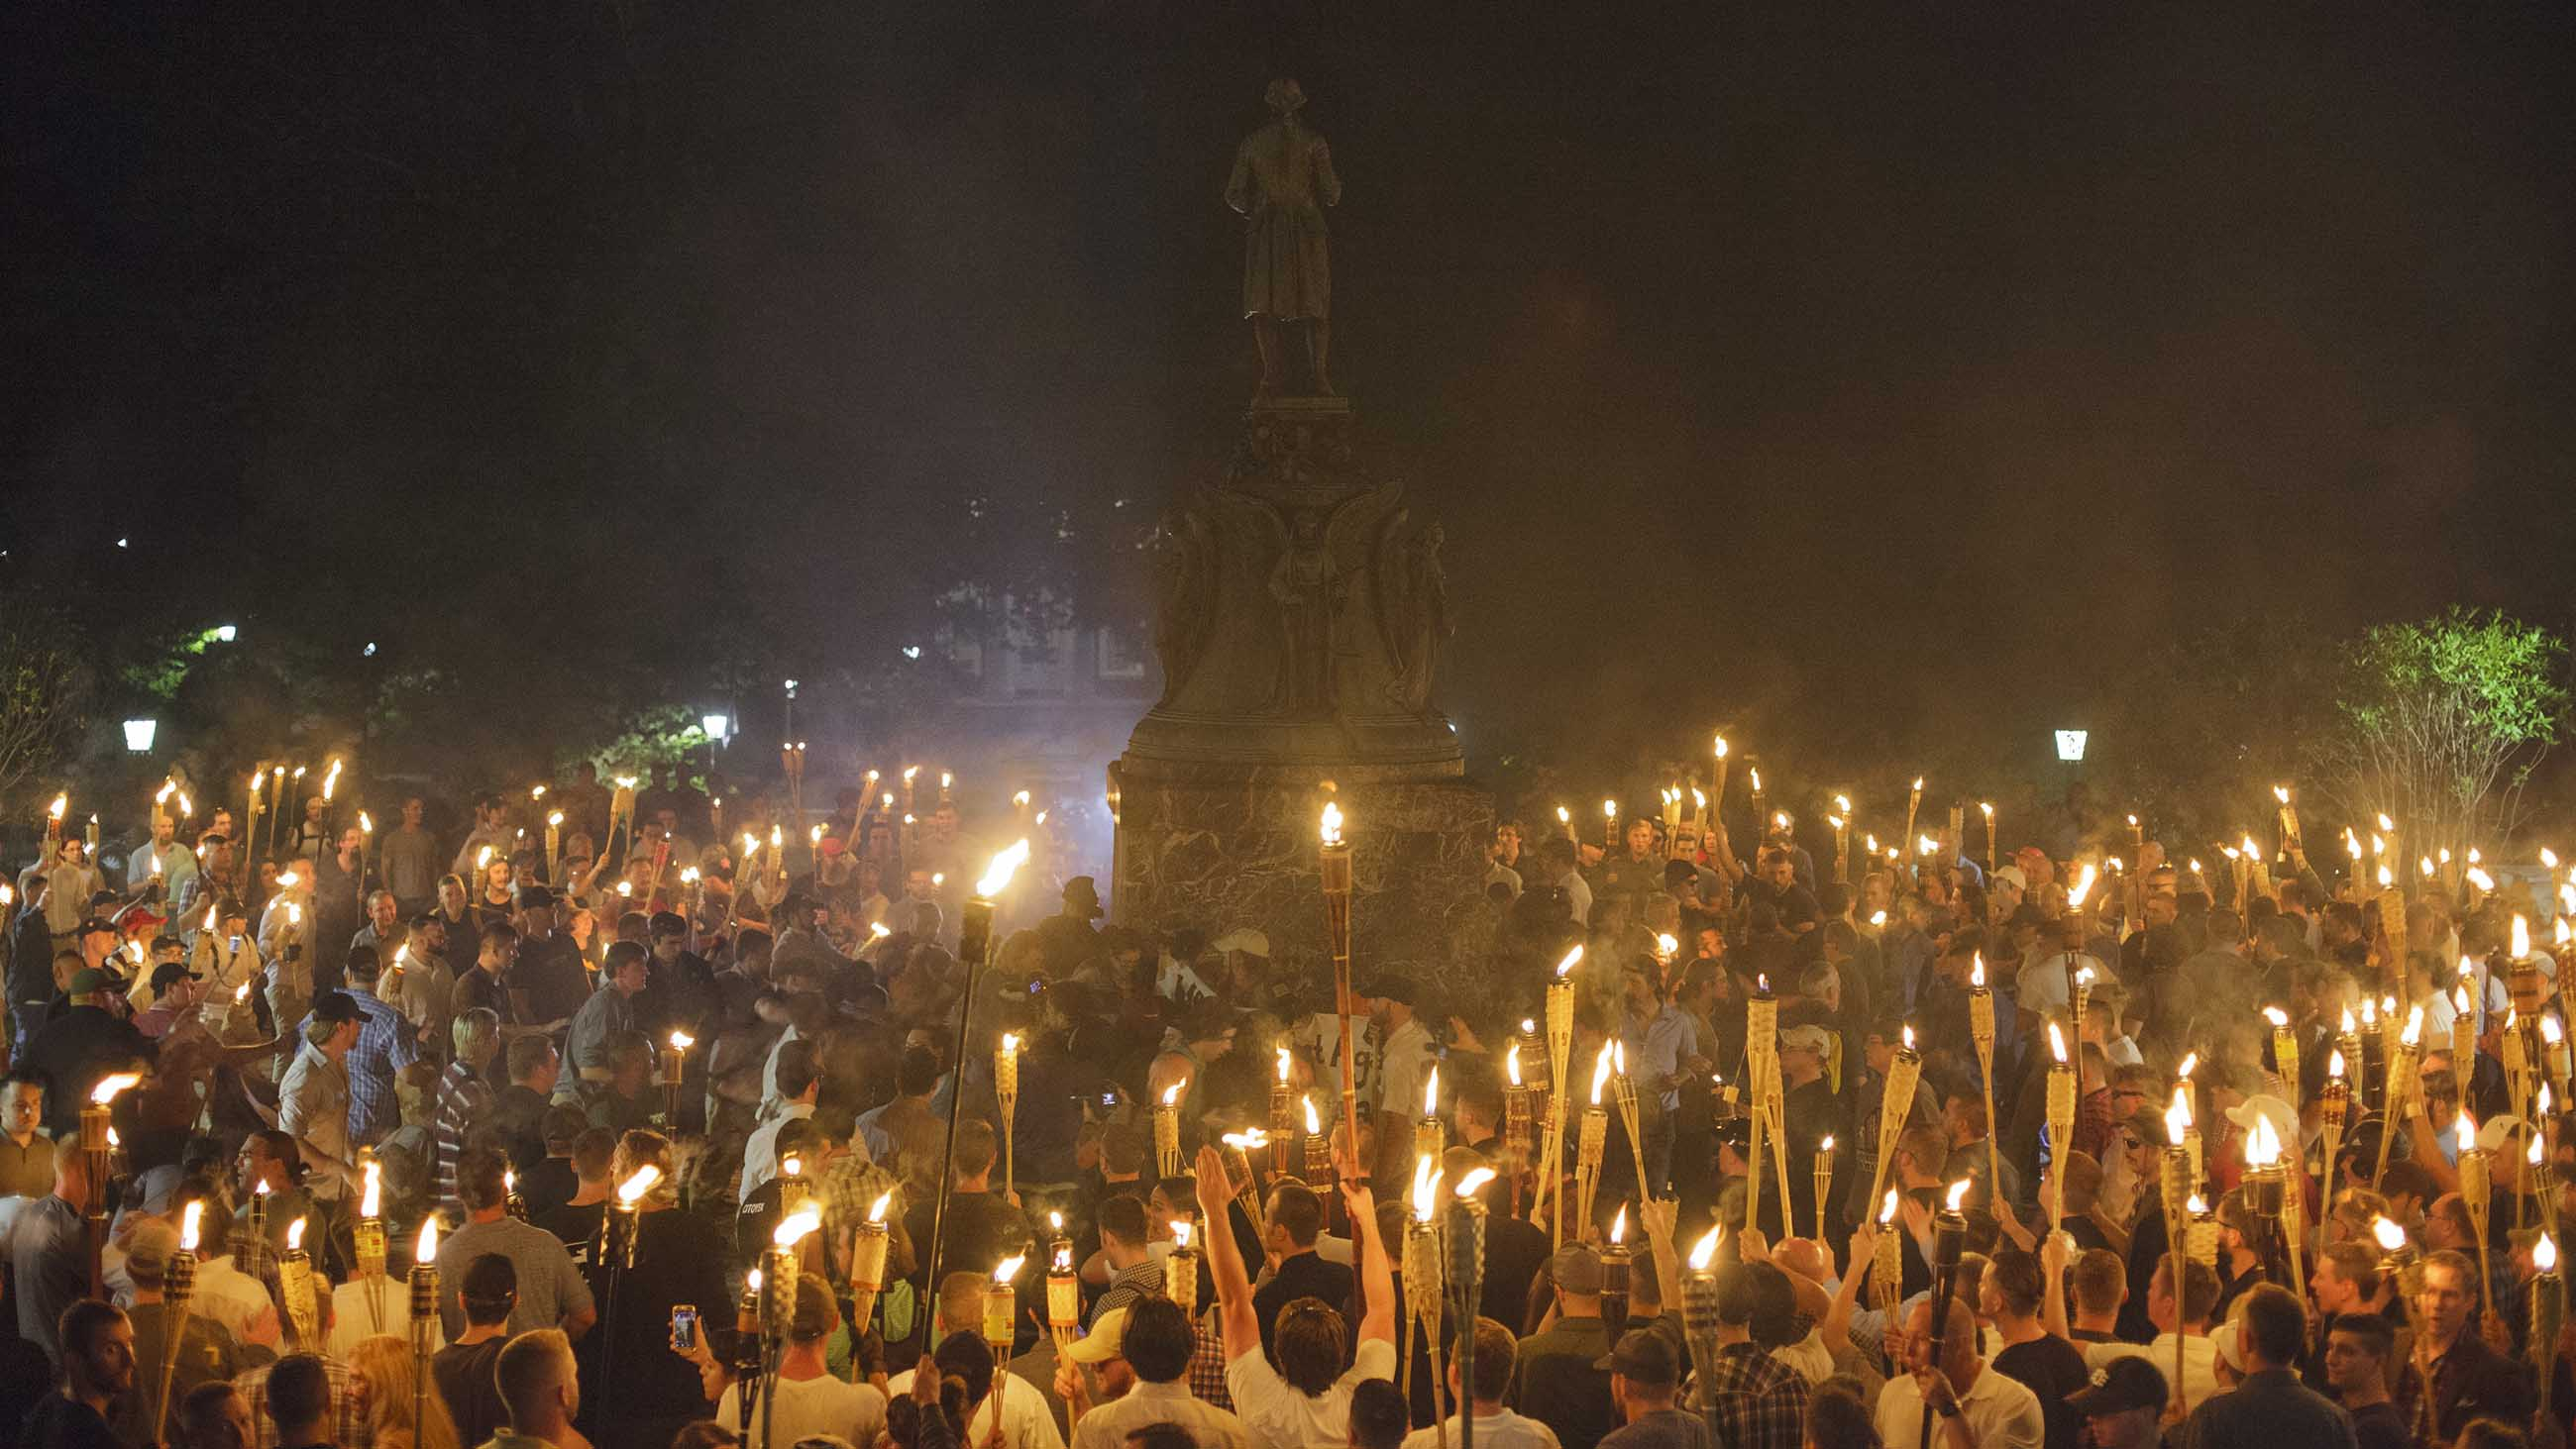 Alt Right, Neo Nazis hold torch rally at UVA